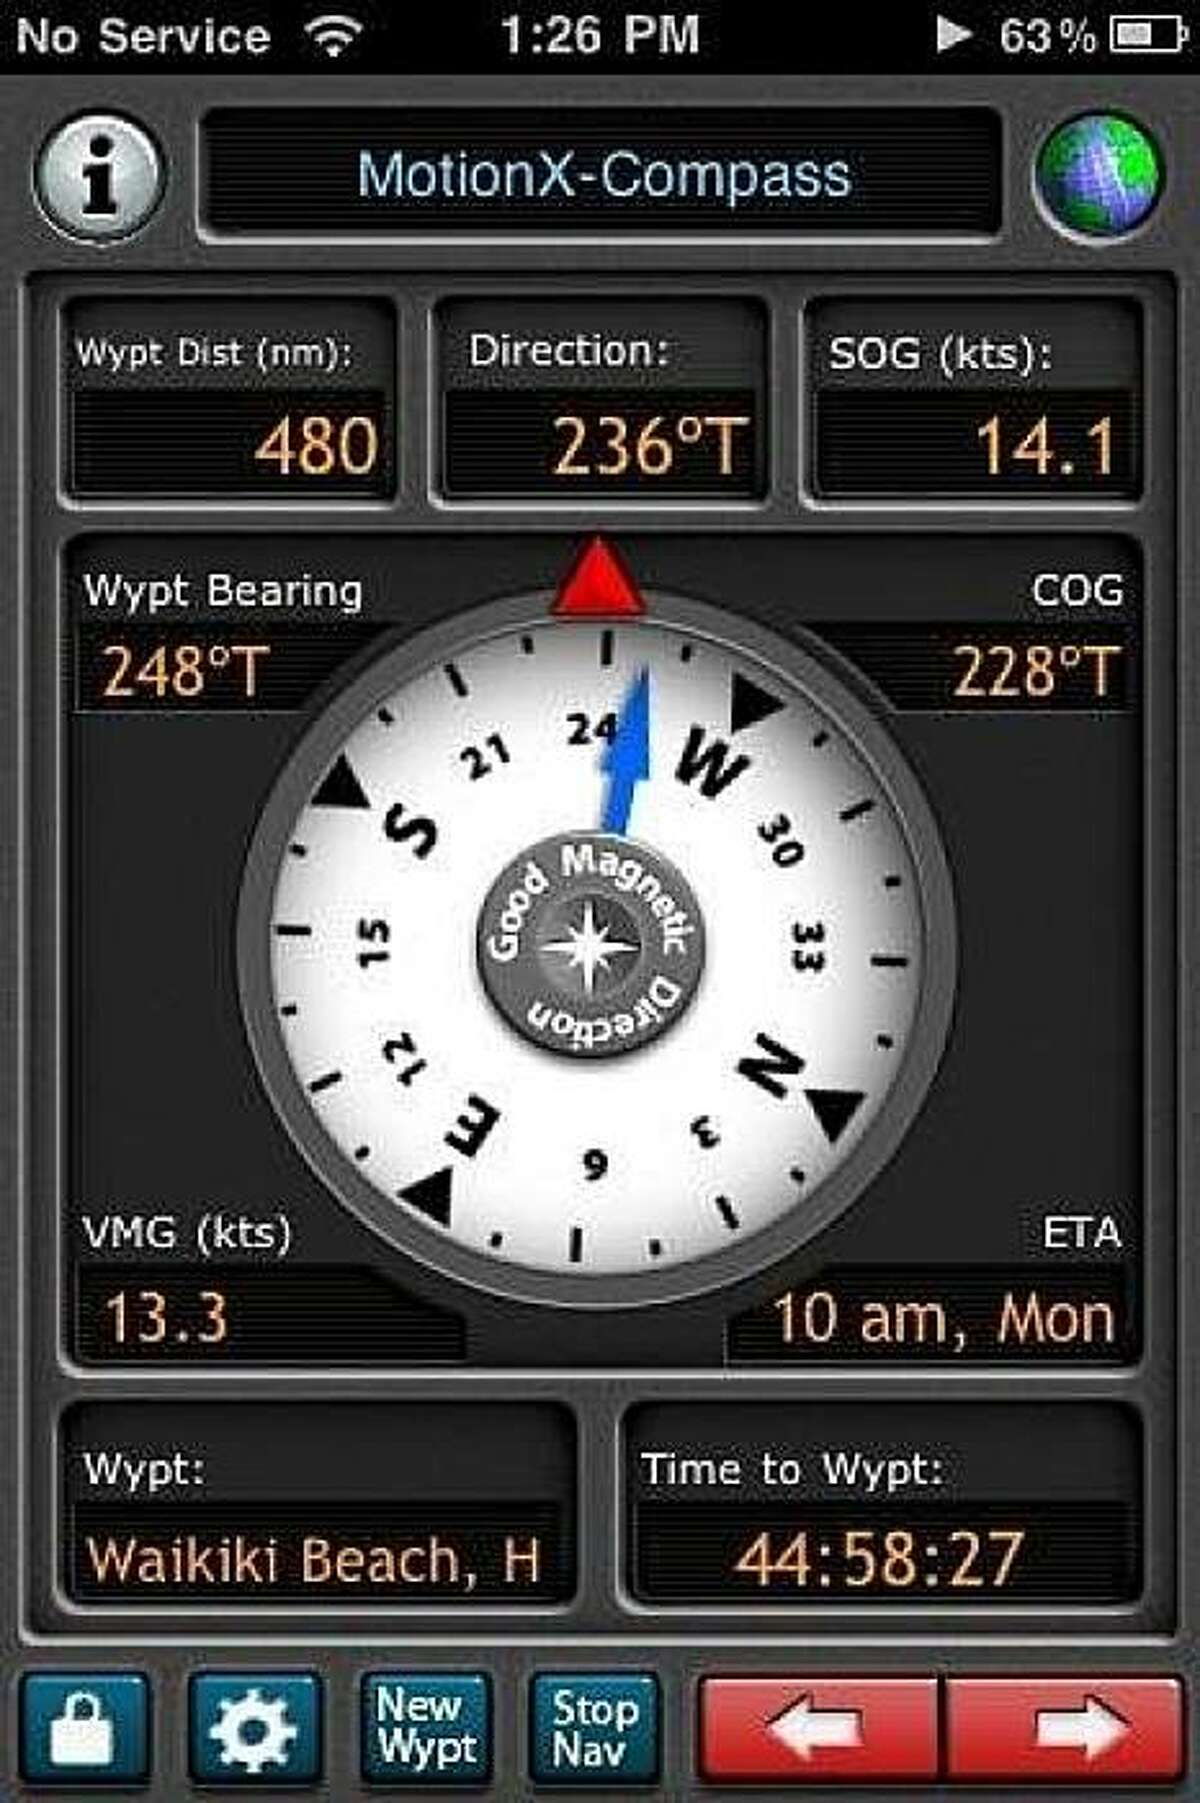 This app was used during the Transpac race to Hawaii earlier this year.